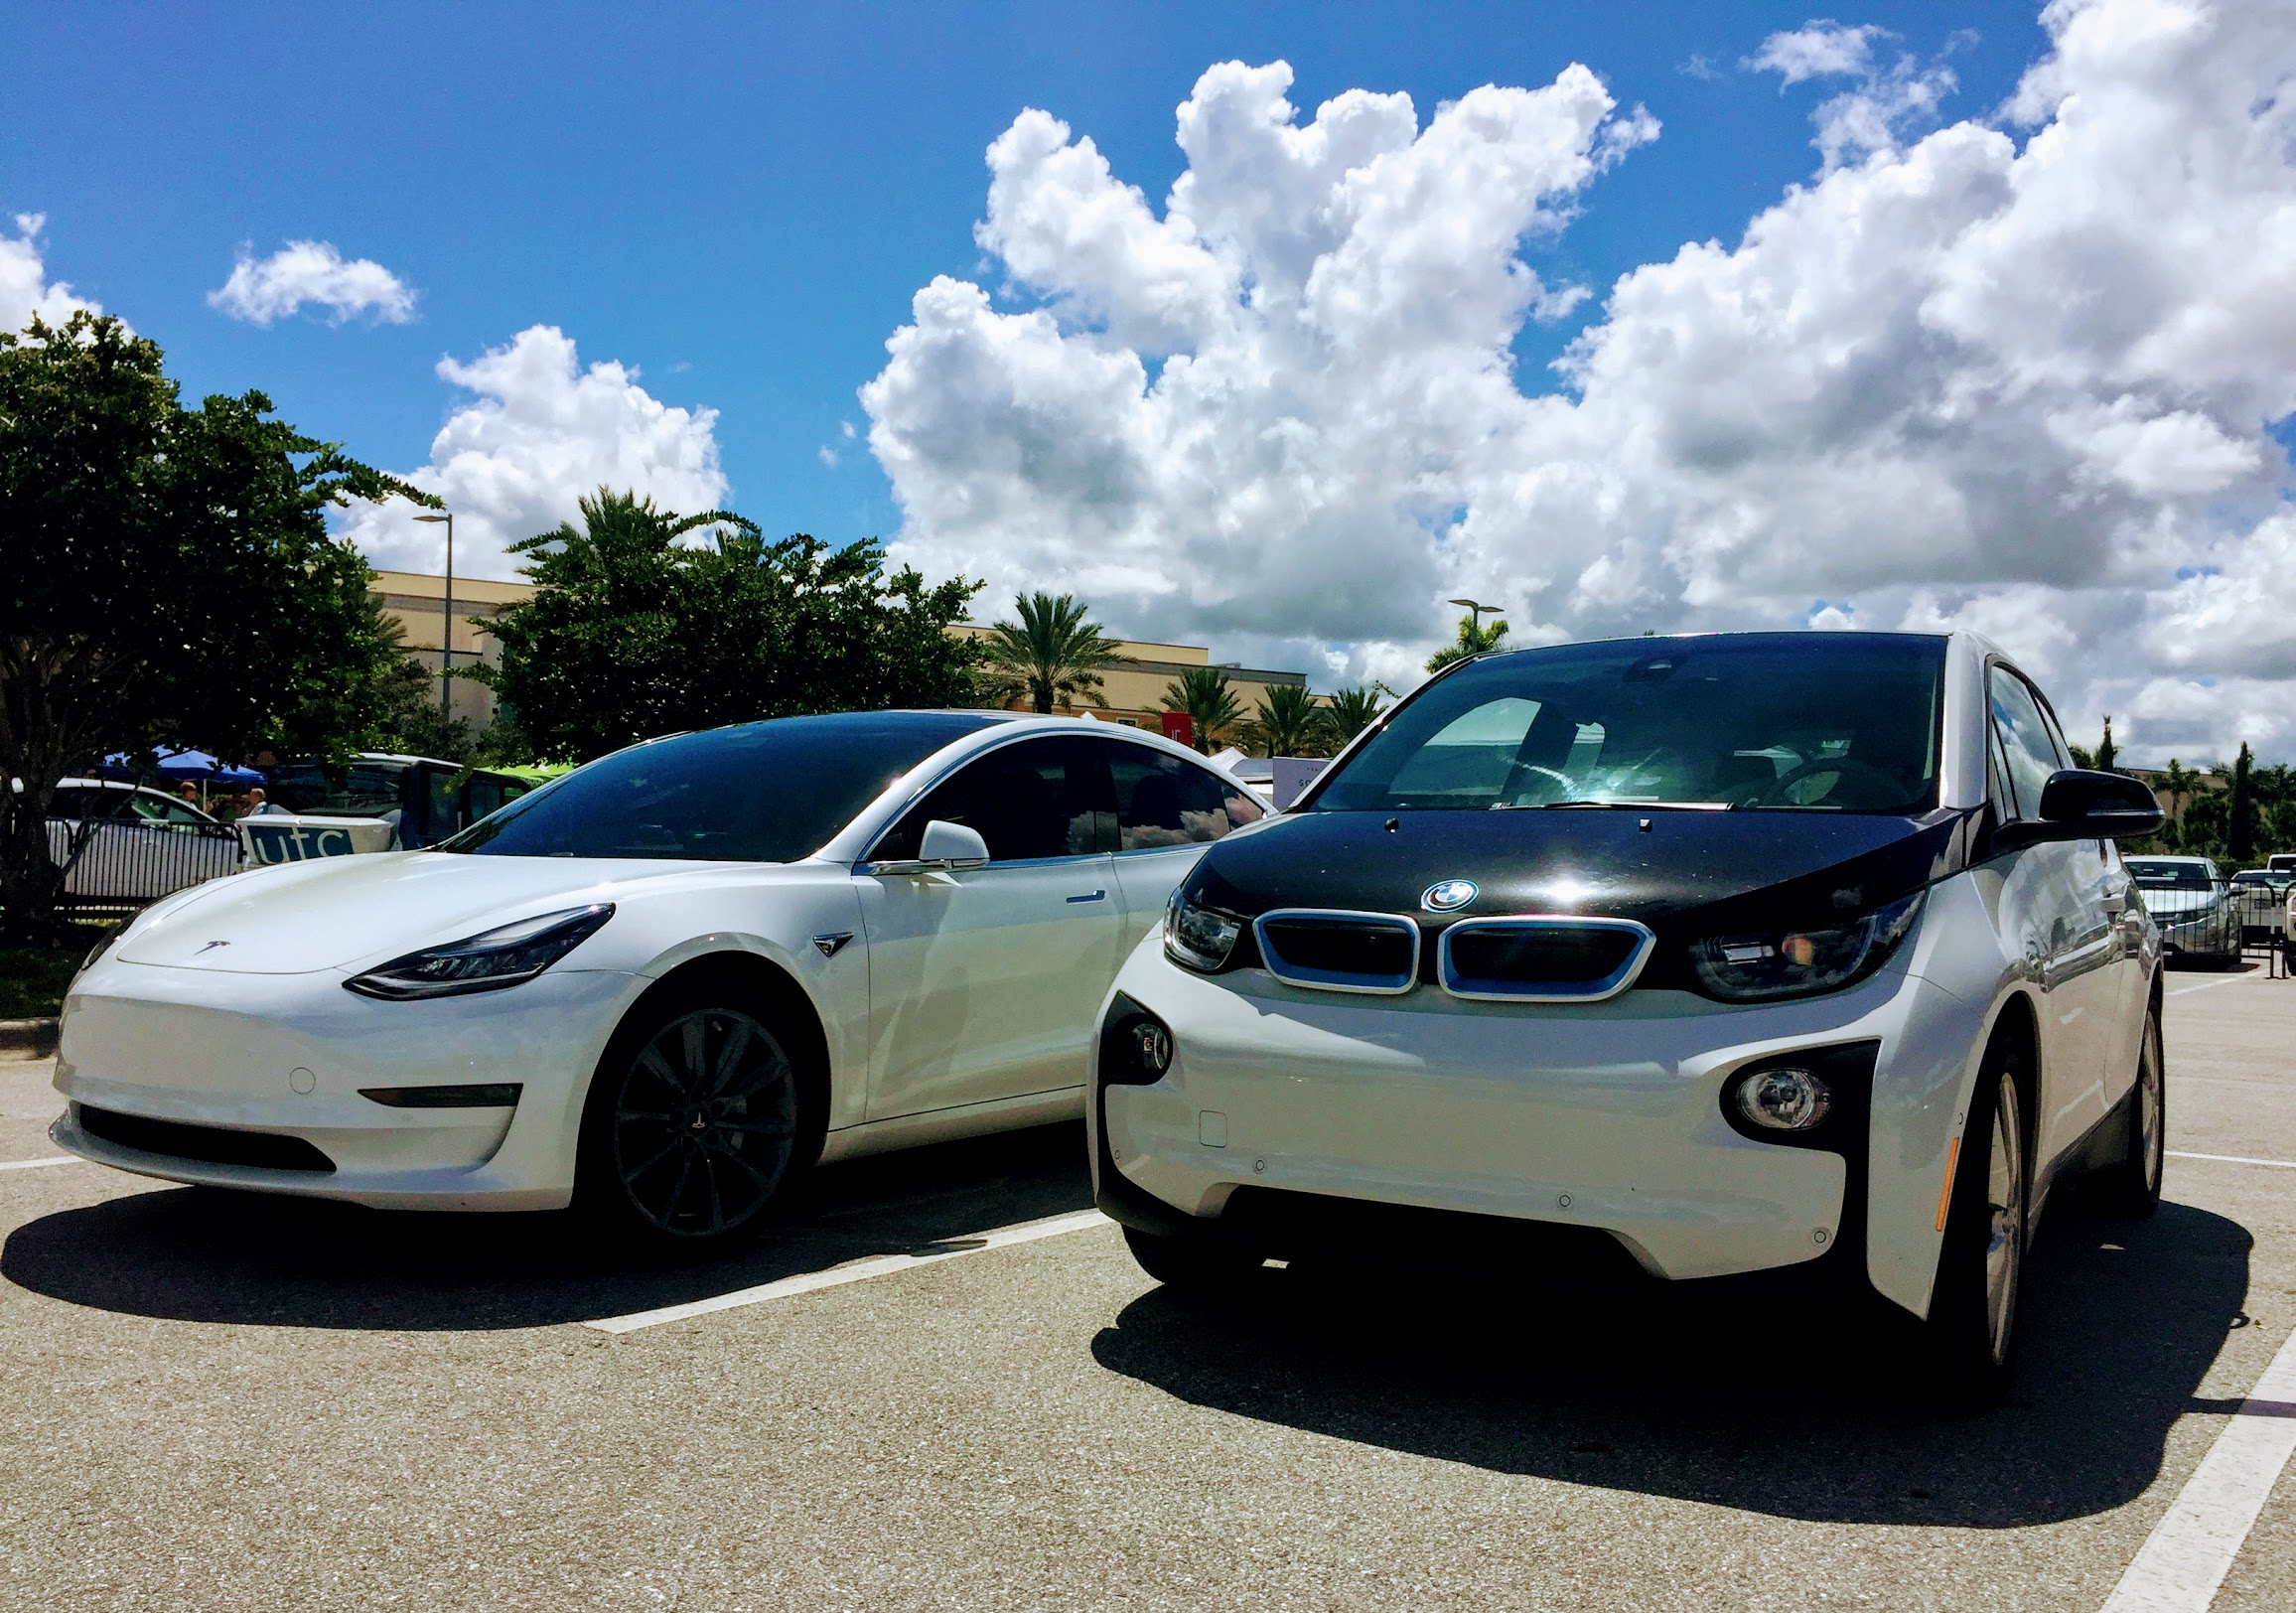 10 Year Extension To Us Ev Tax Credit Proposed Cleantechnica